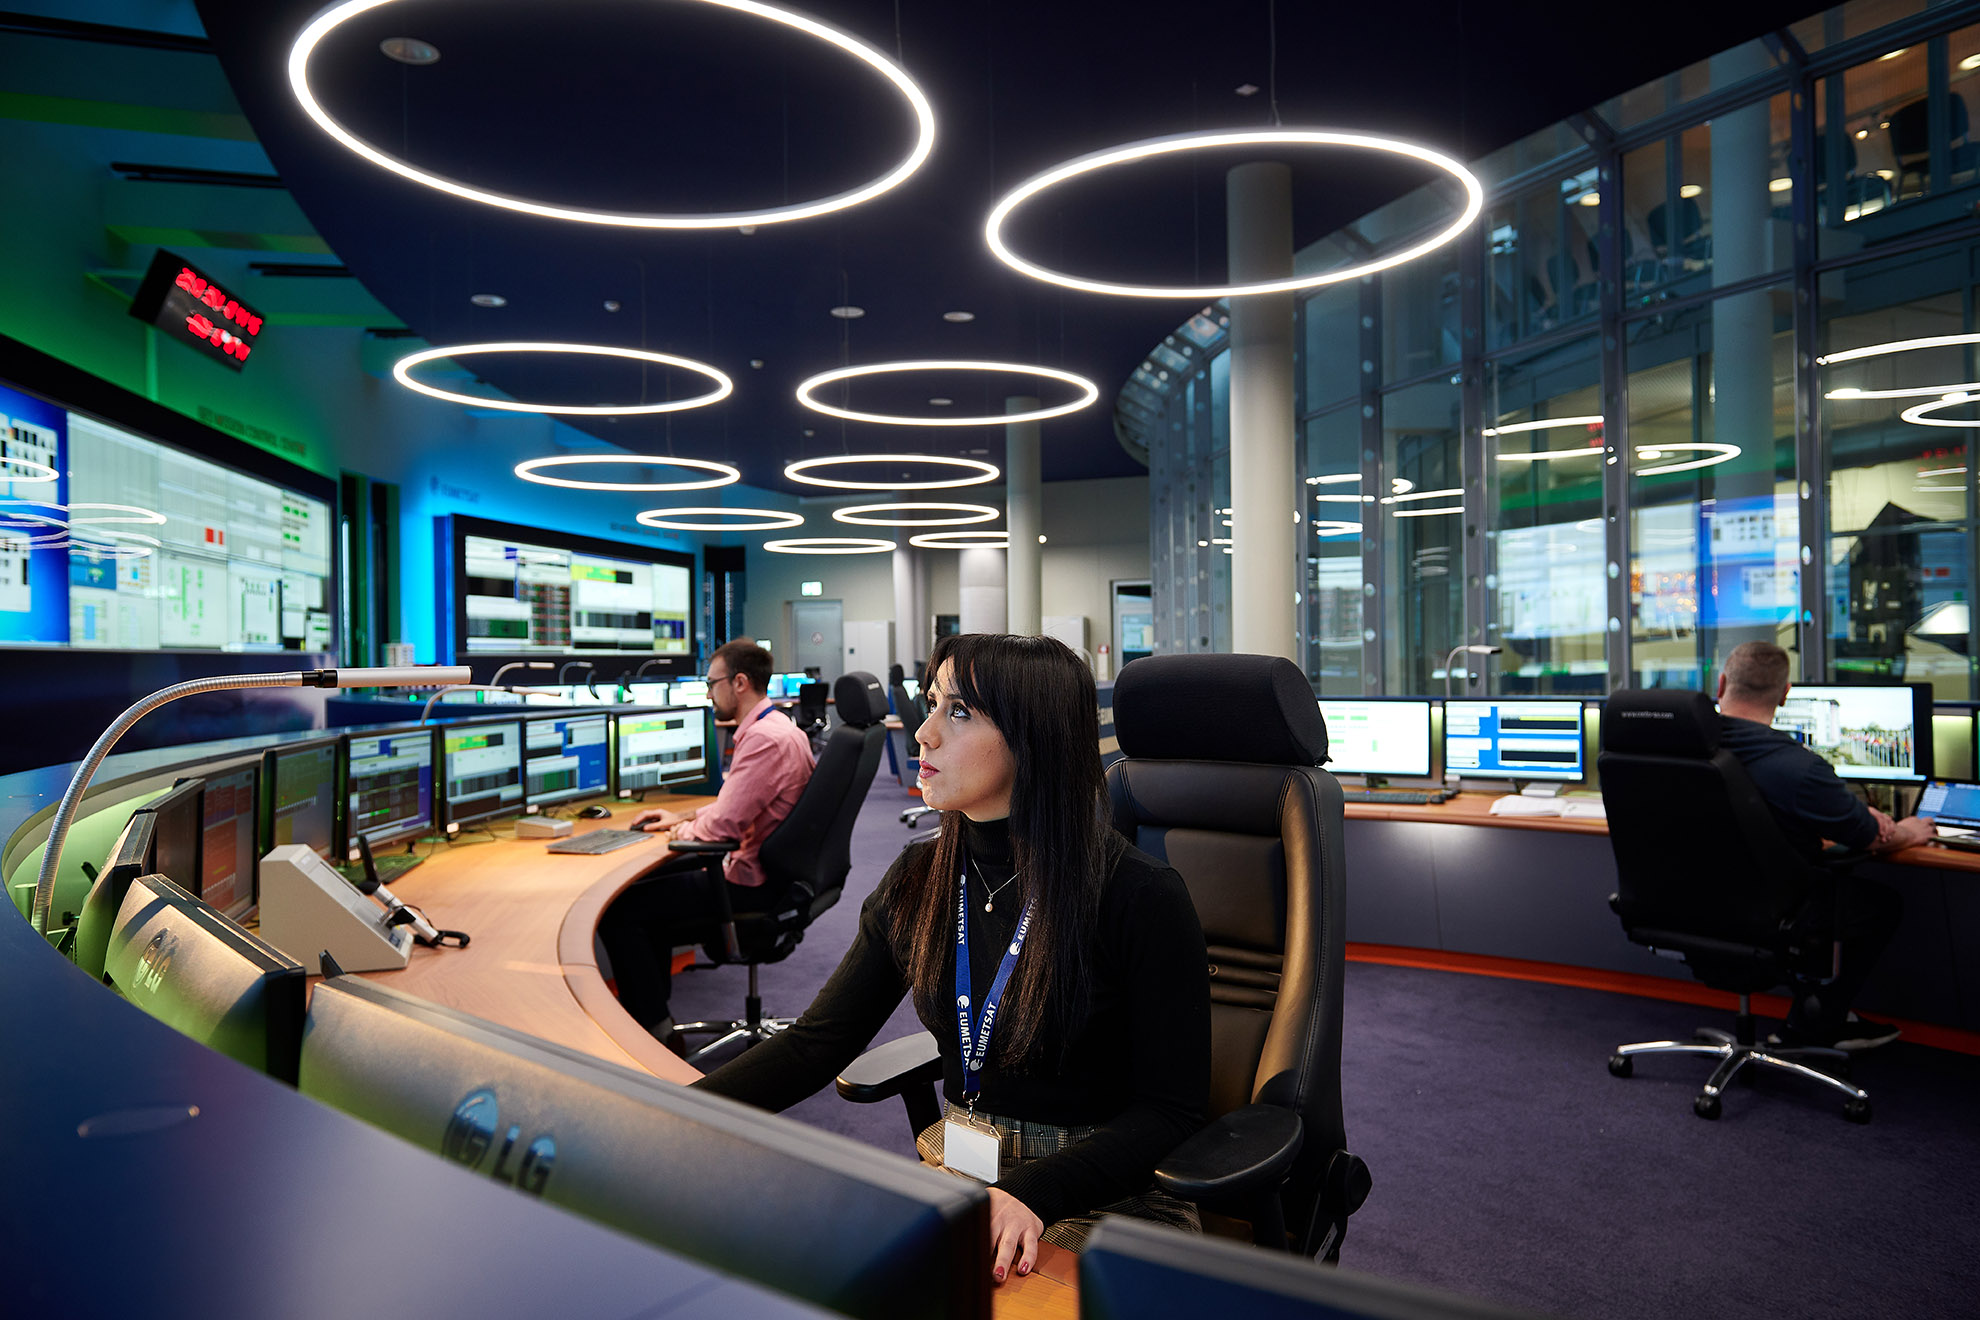 The recently refurbished EUMETSAT Geostationary Mission Control Centre in Darmstadt, Germany.